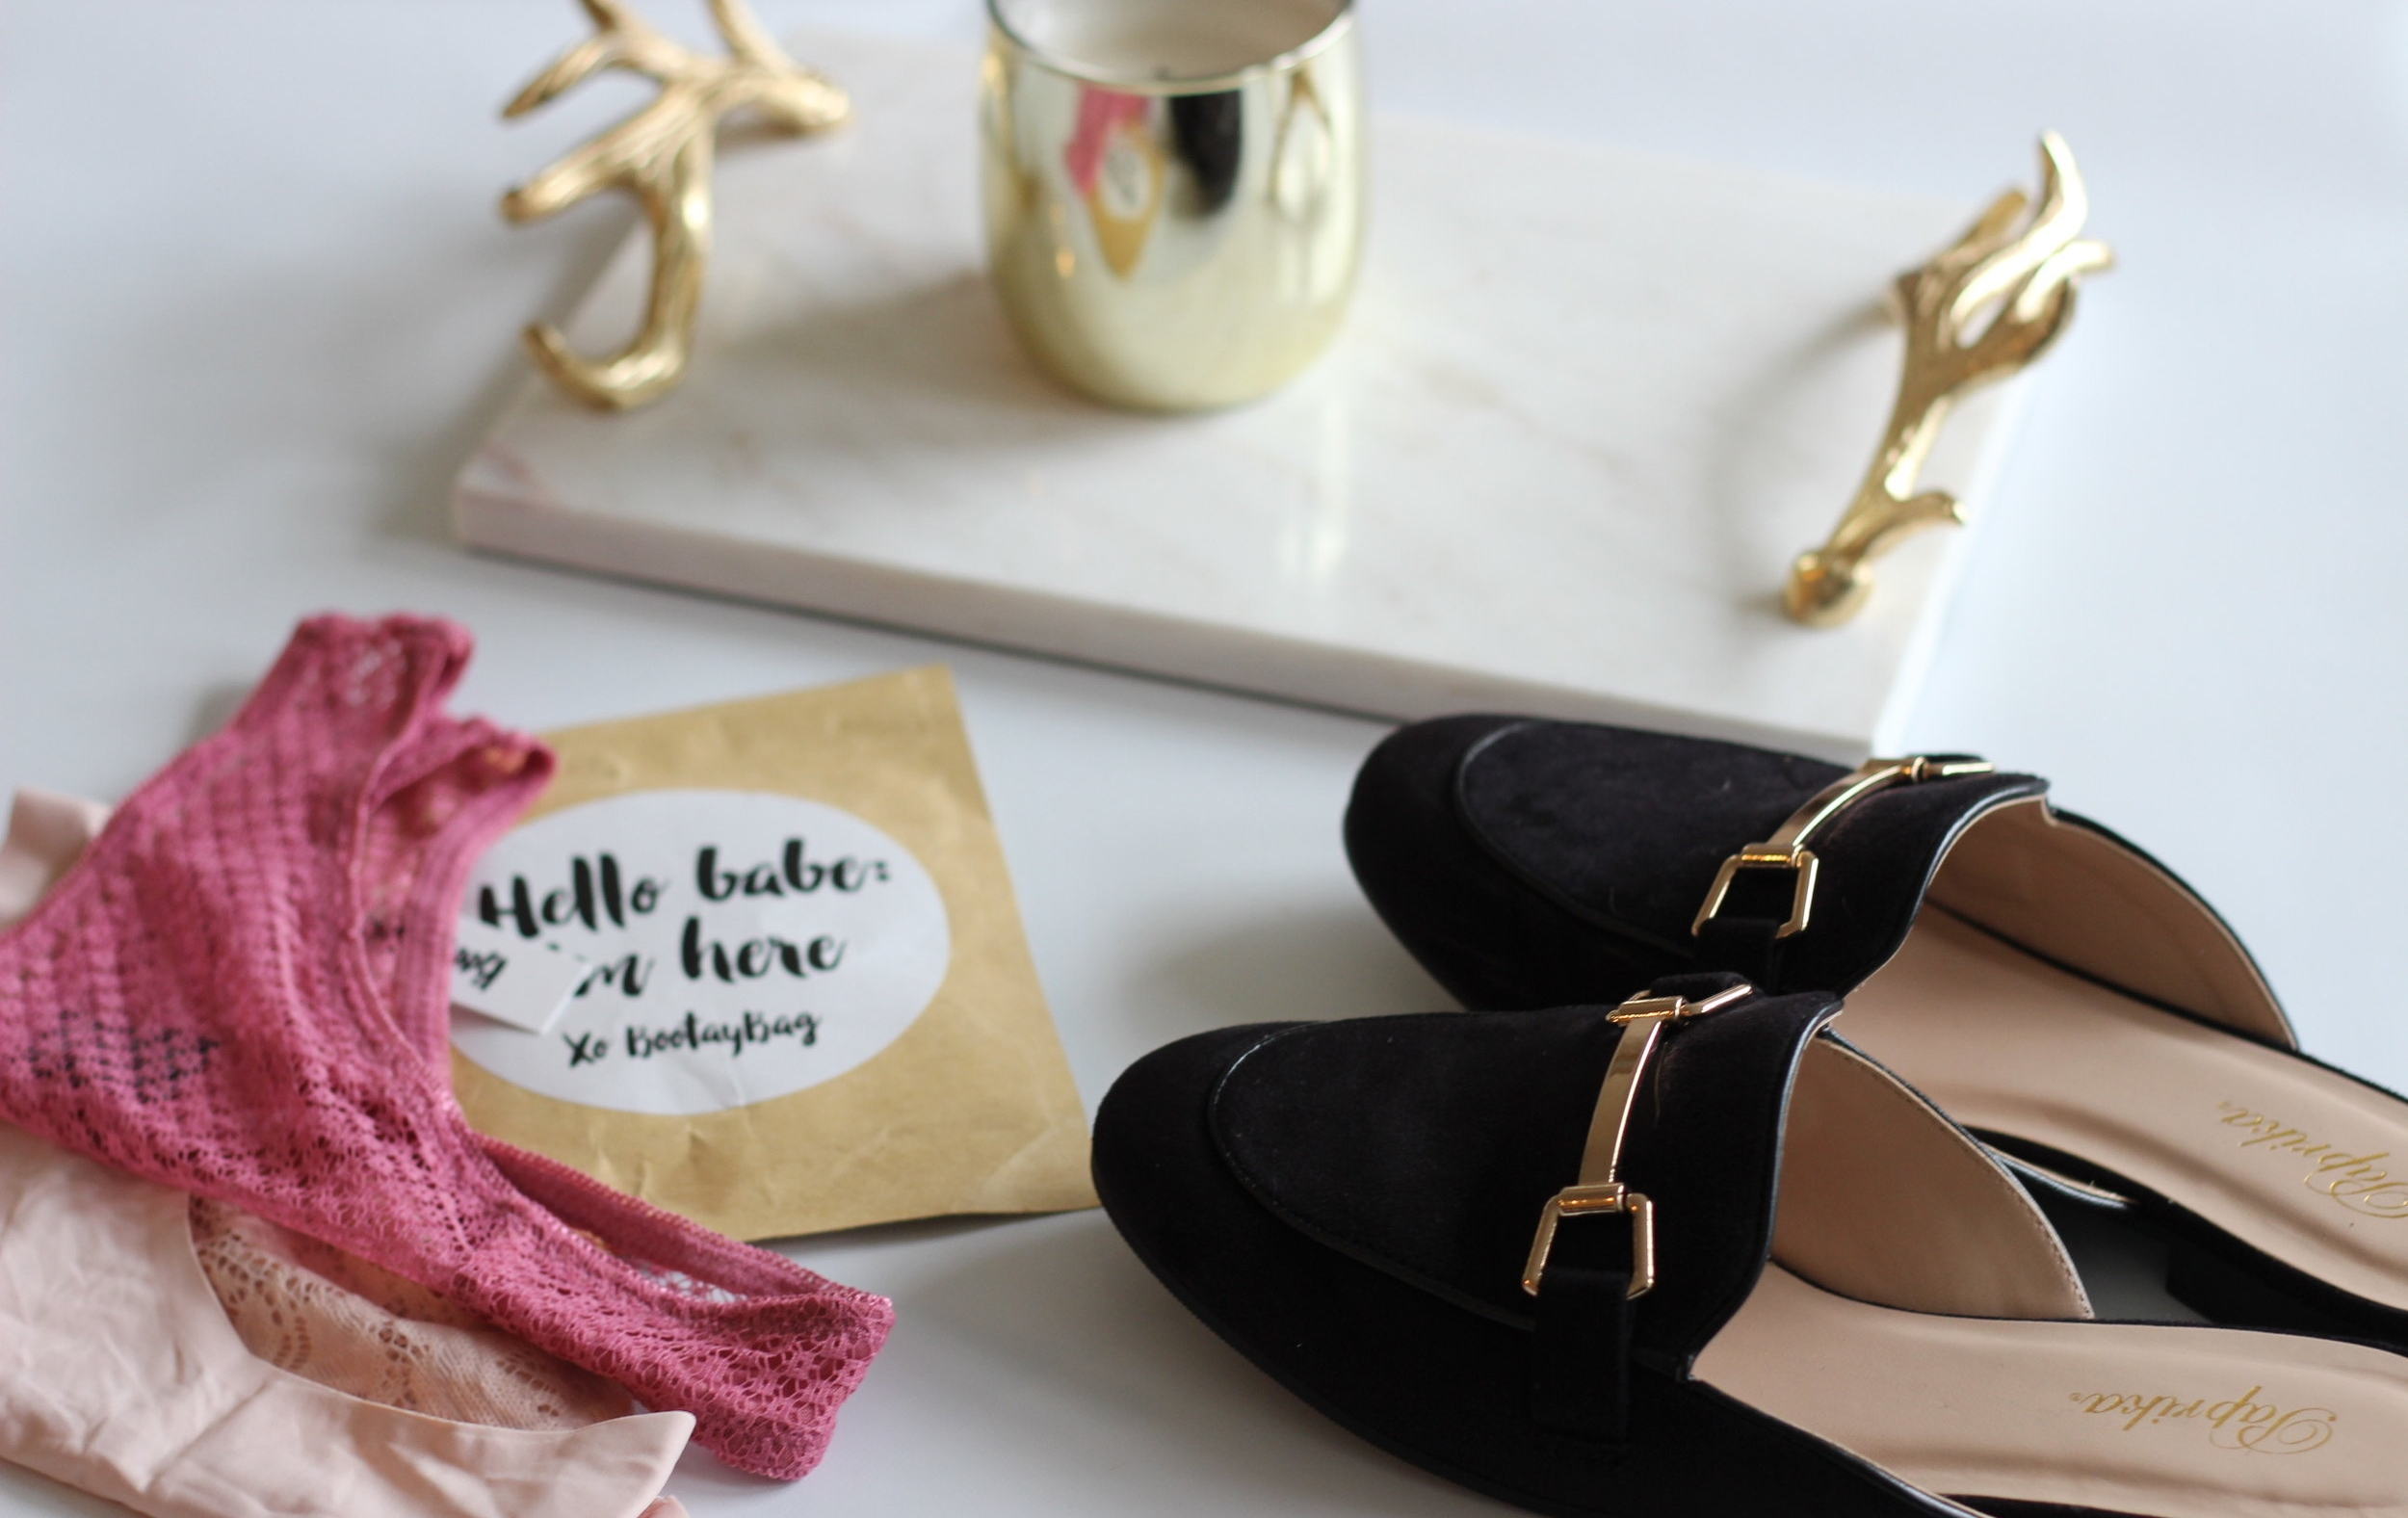 flatlay-loafers-slides-gold-accents-marble-tray-lace-underwear.jpg